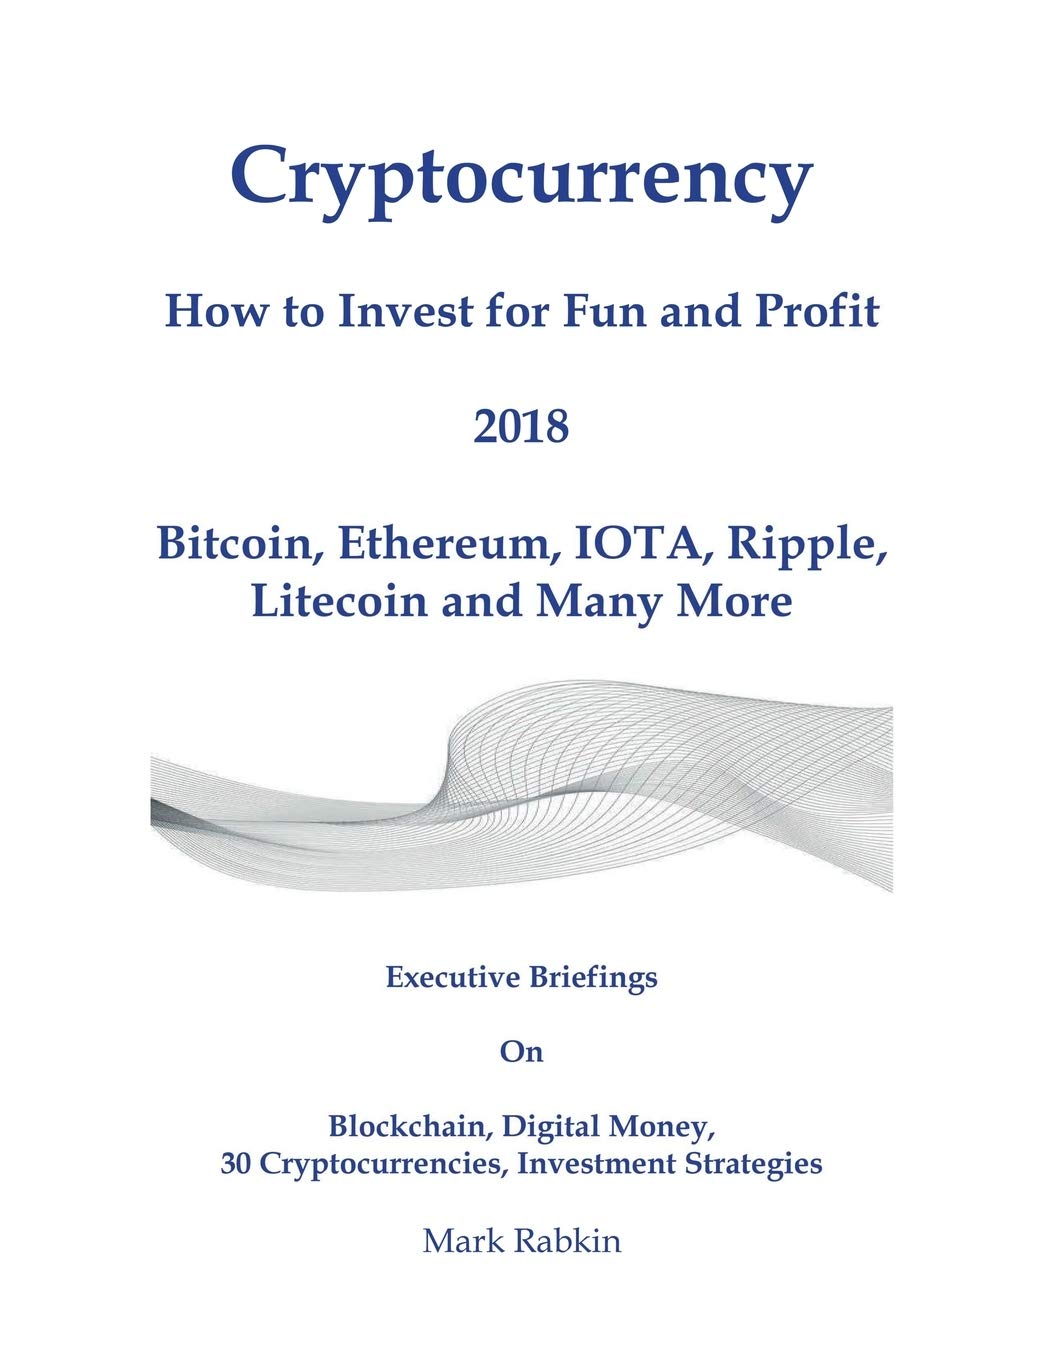 who can invest my money to cryptocurrency